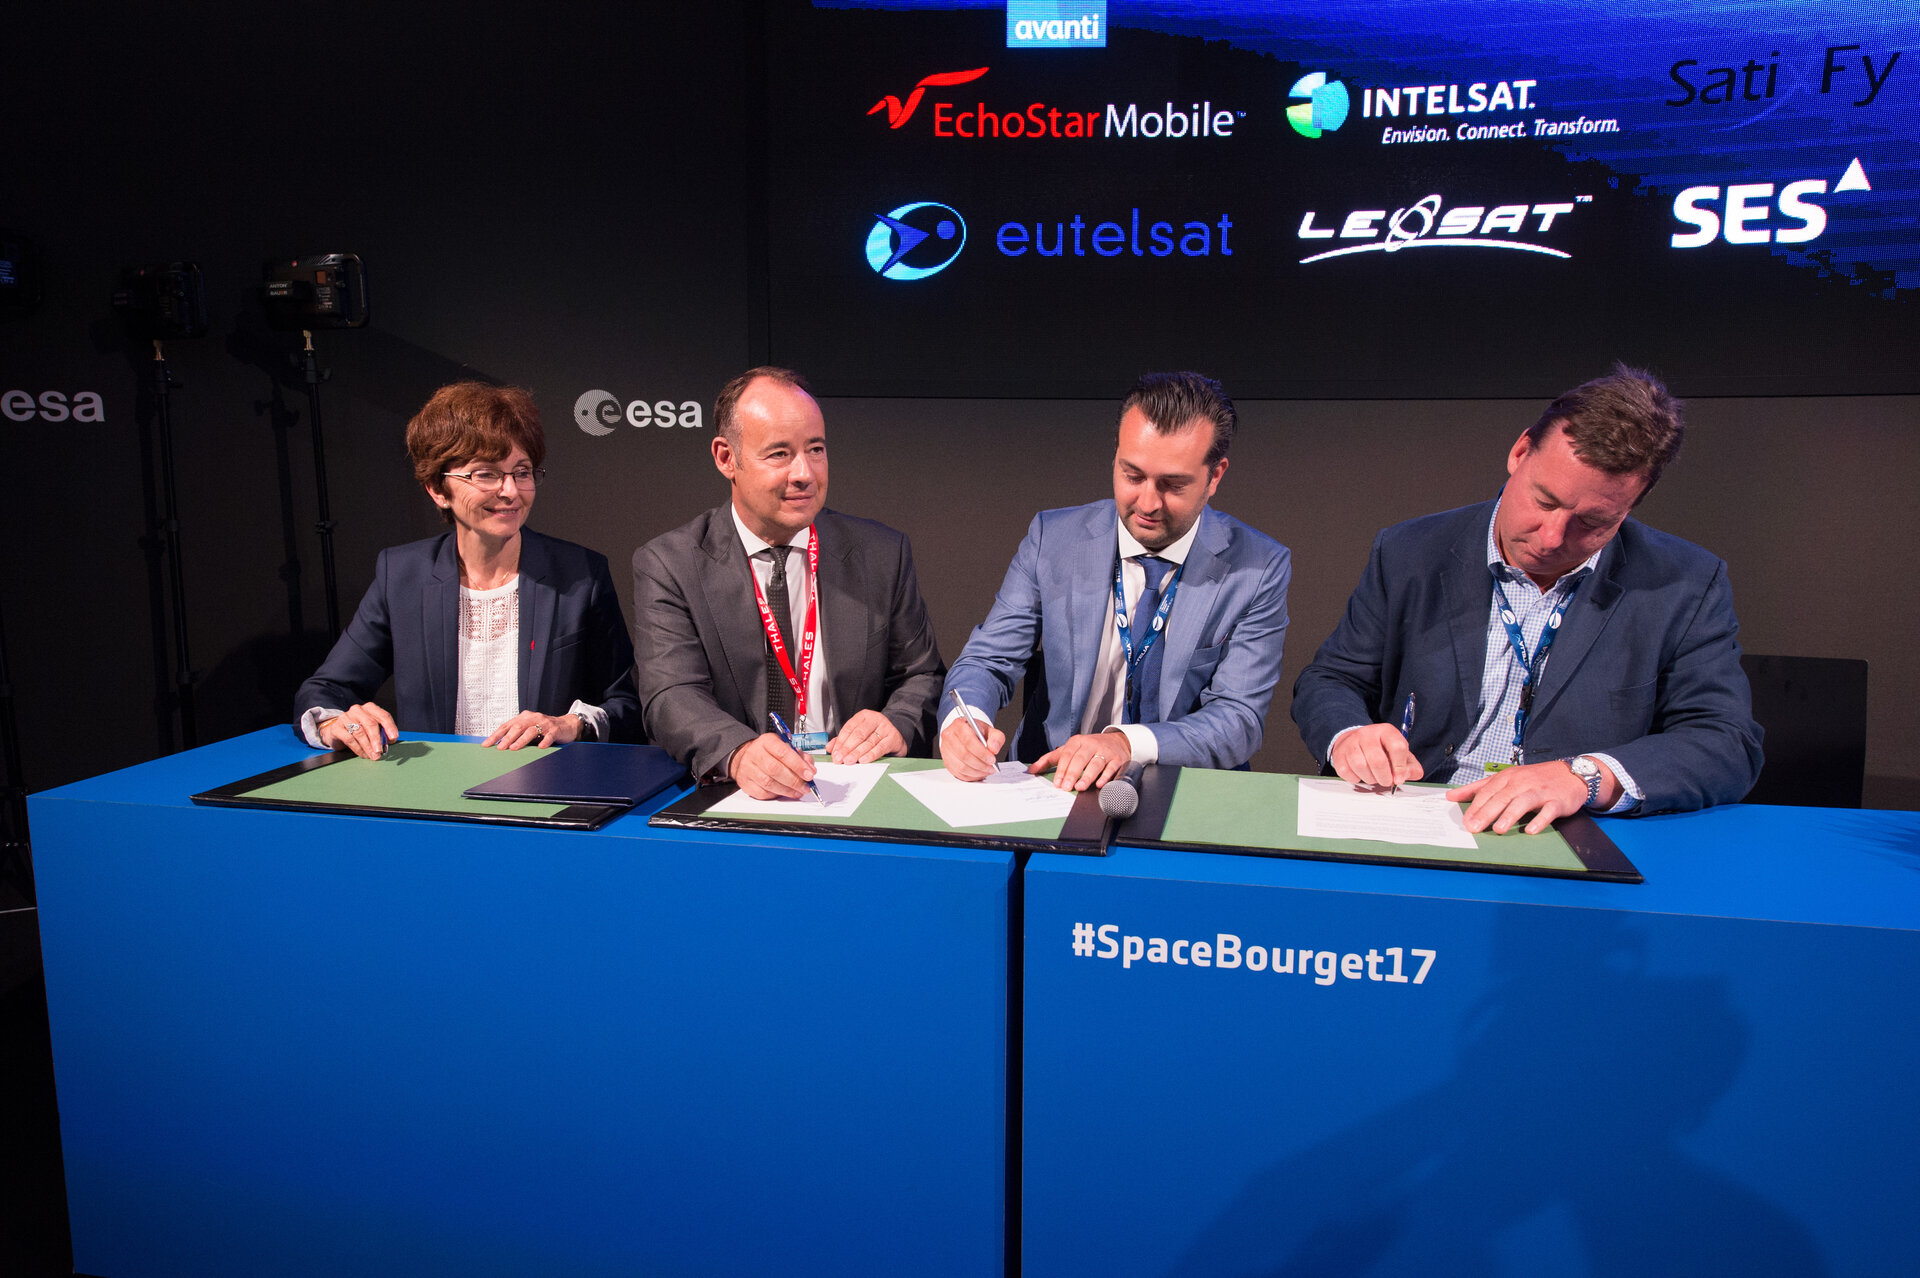 Signature of a joint statement on collaboration over 'Satellite for 5G'